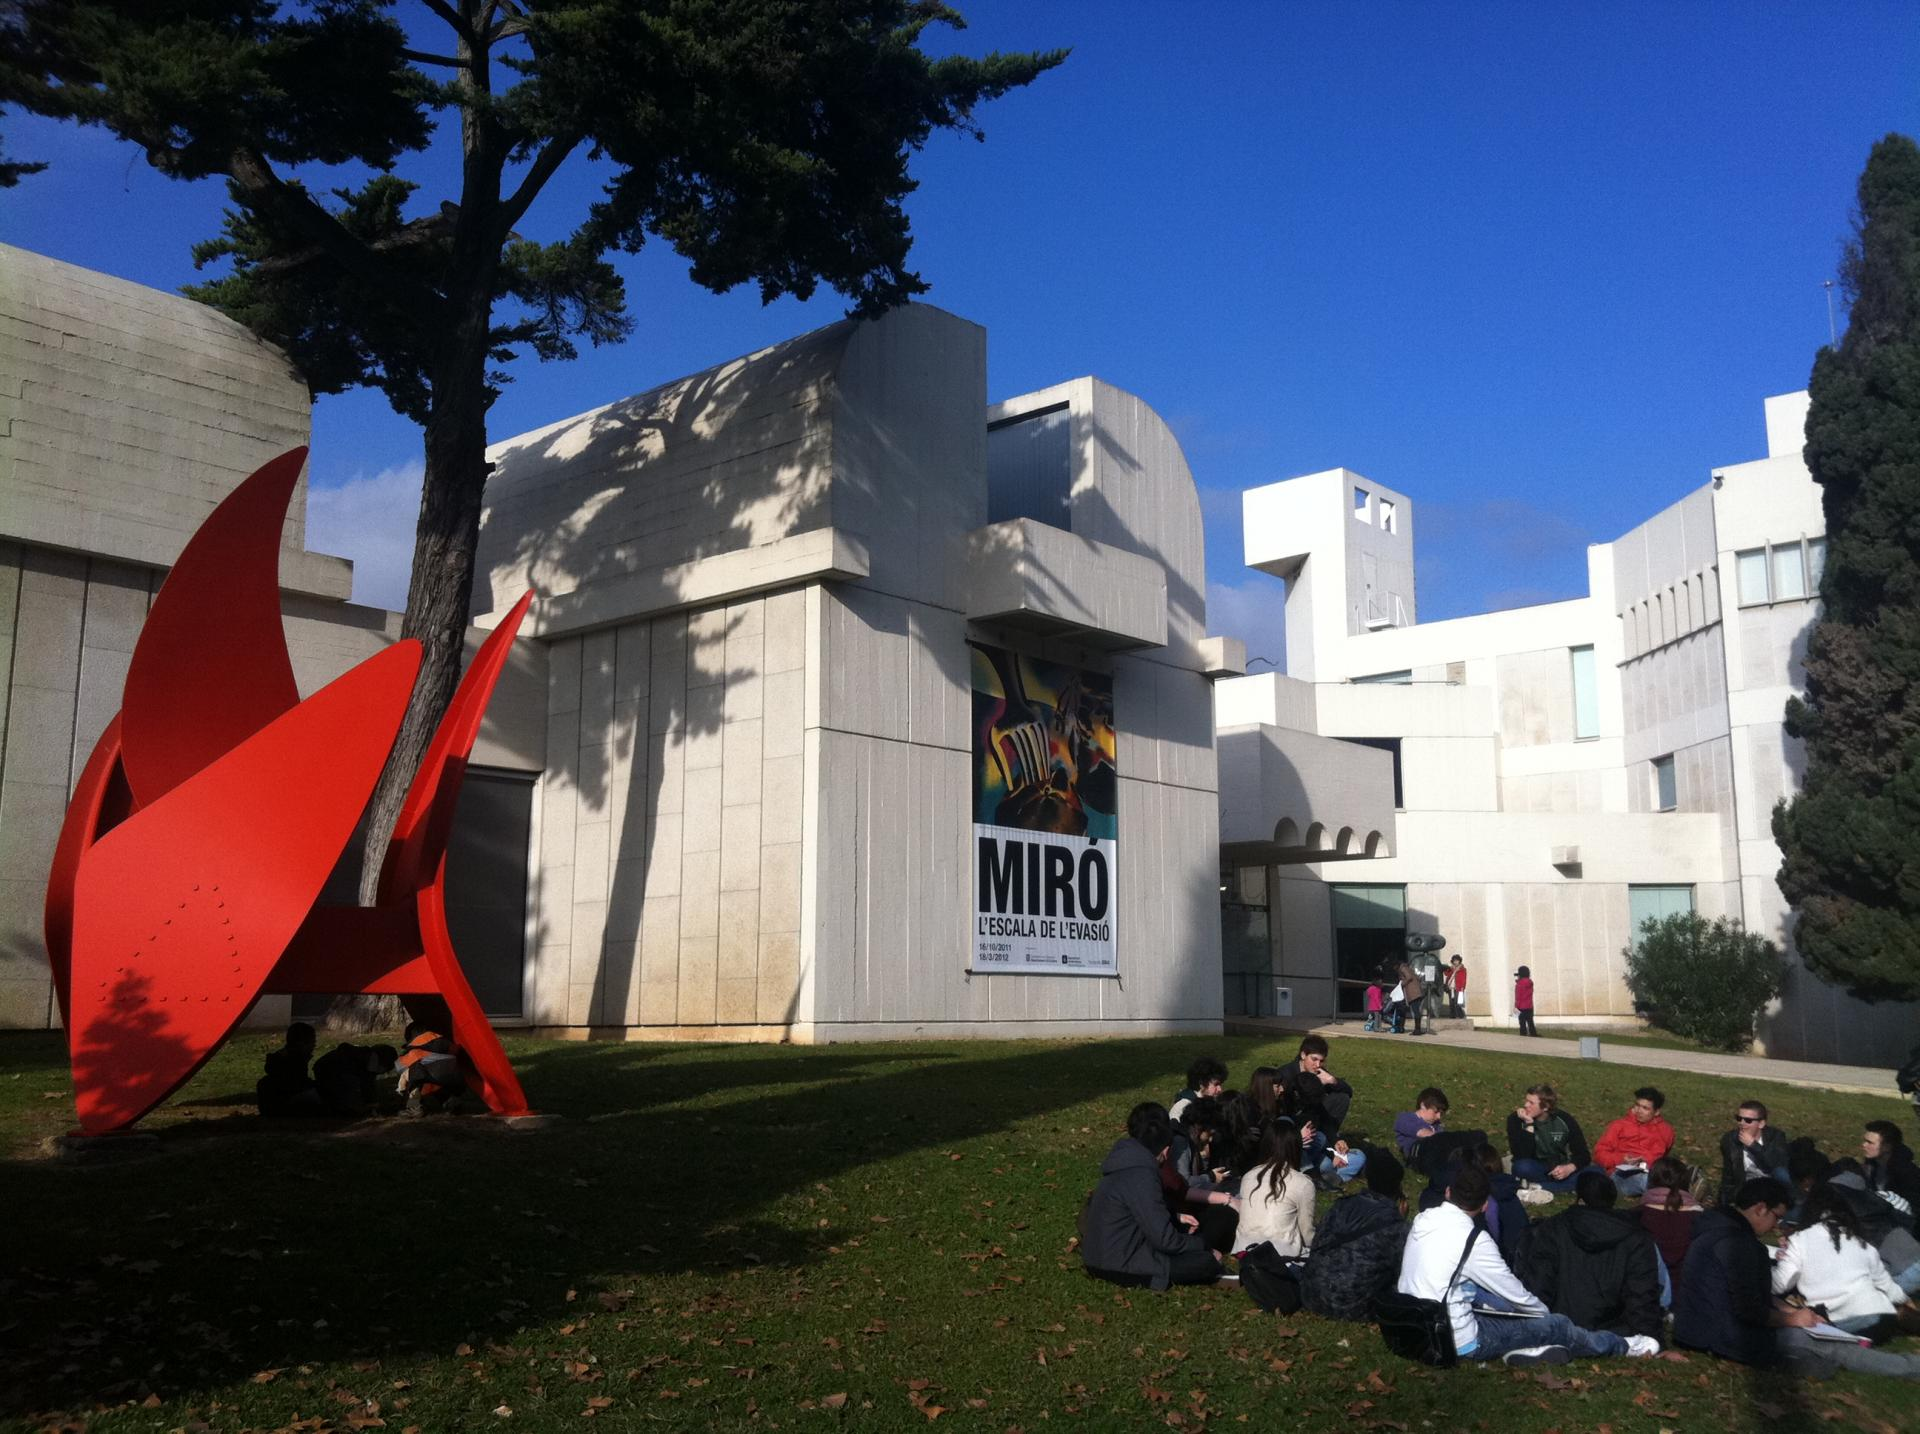 Joan miro outdoors view